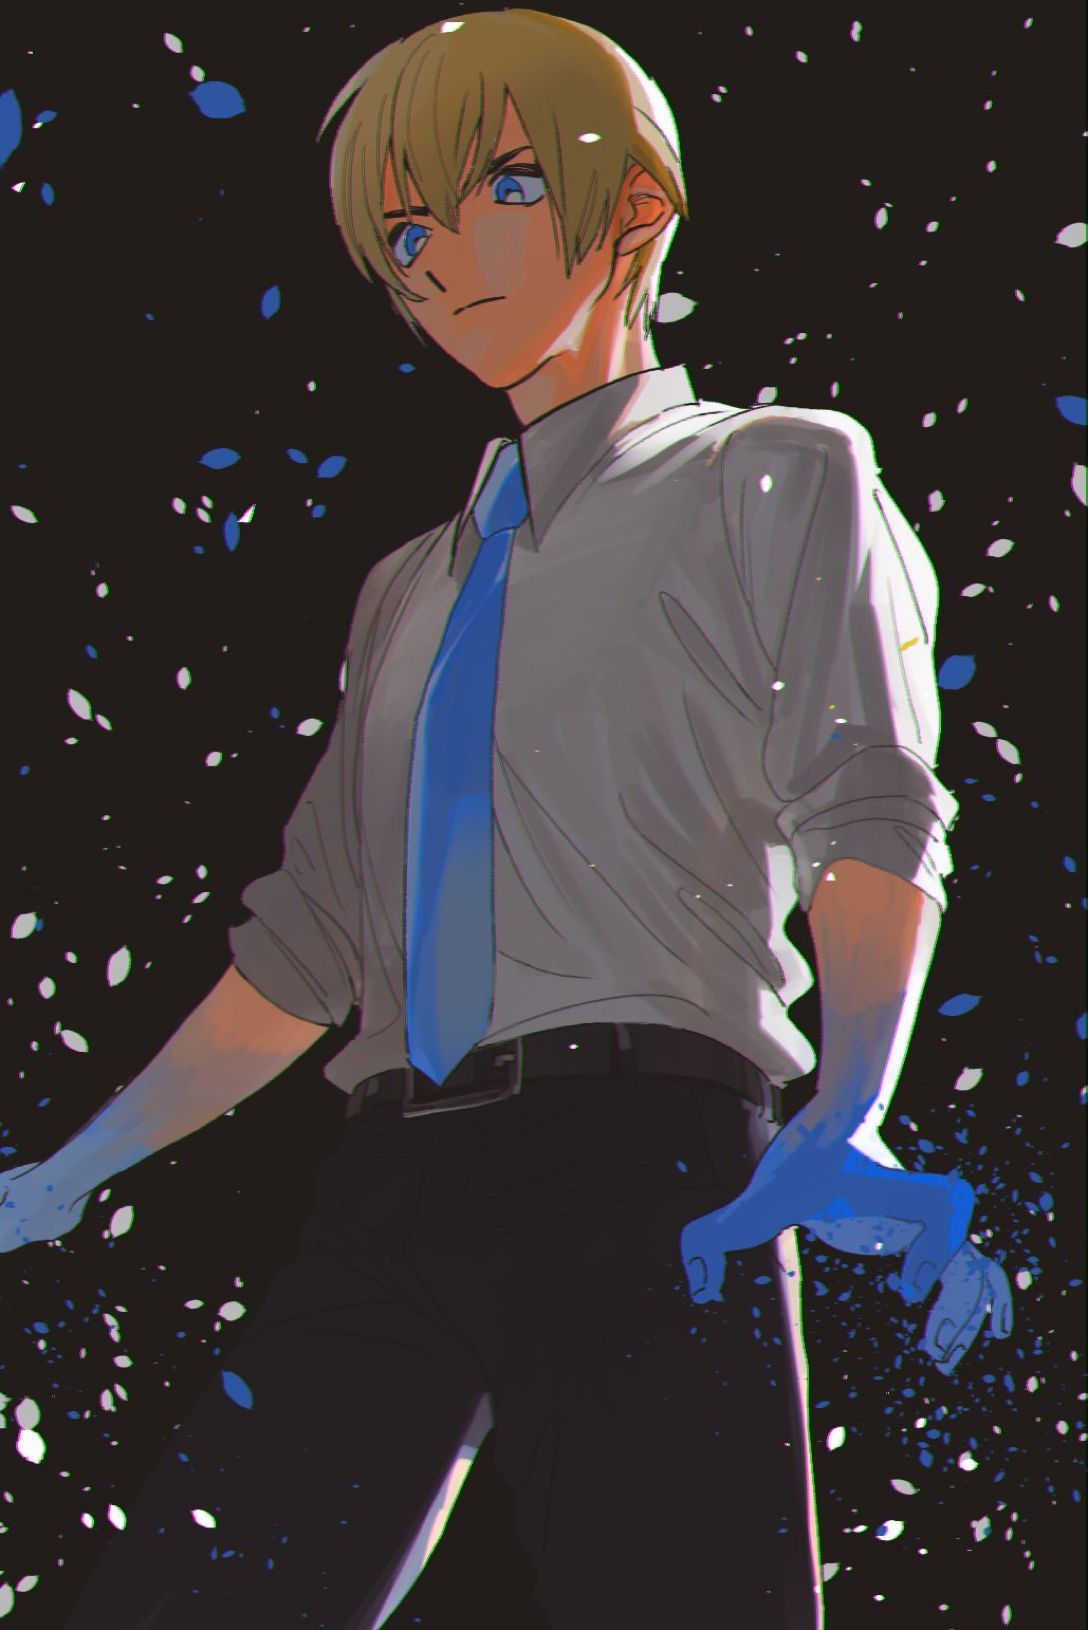 Pin by 🌟IVA🌟 on DC and MK in 2020 Detective conan, Anime